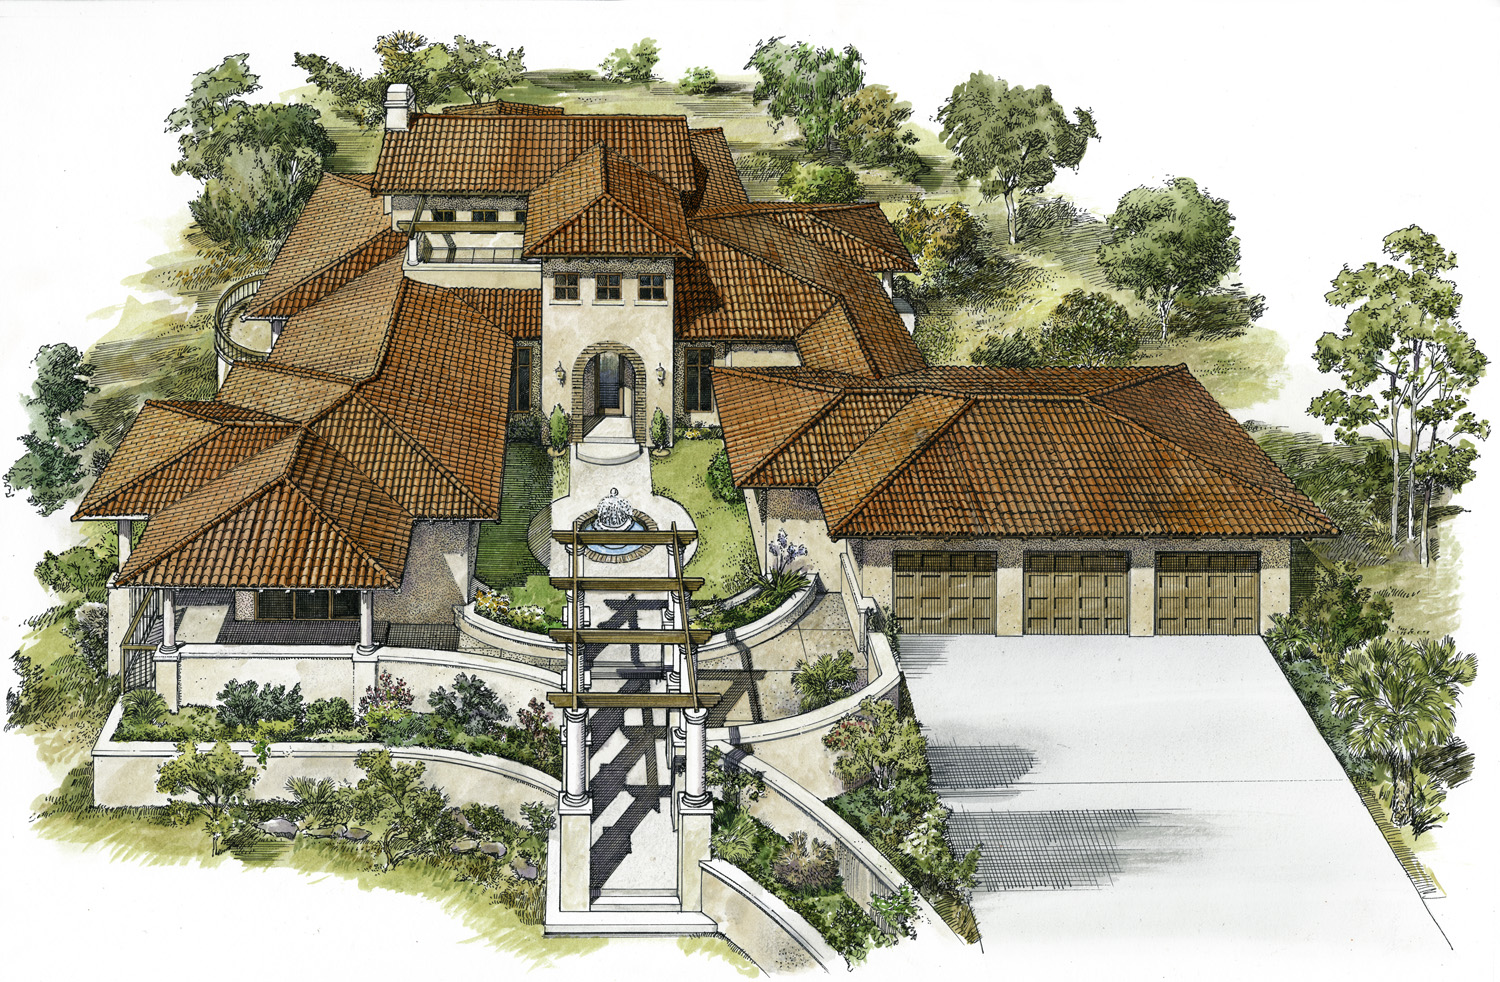 Courtyard entry garden 46024hc architectural designs for Courtyard entry house plans